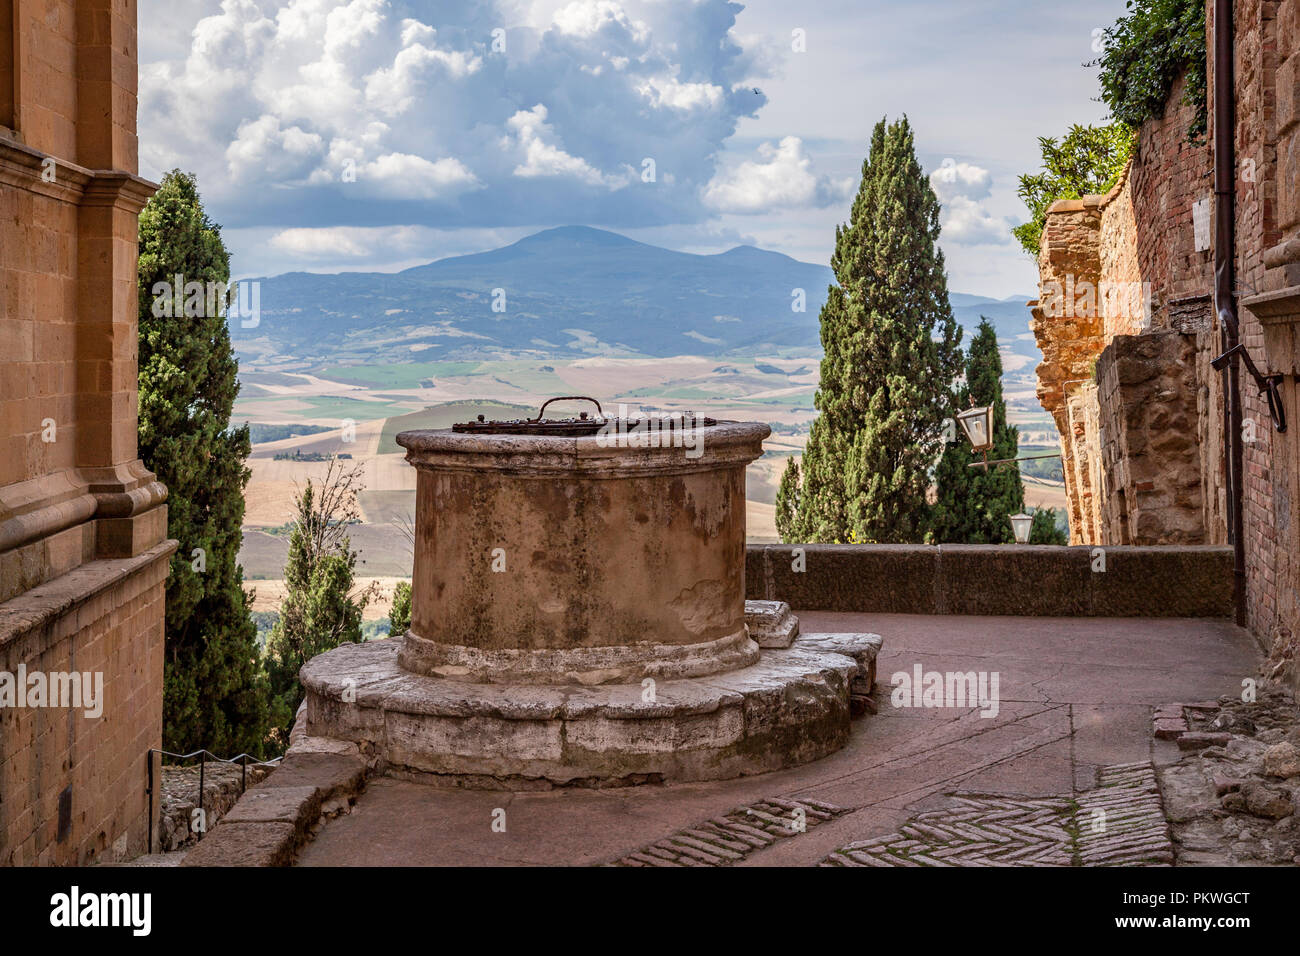 An ancient cistern disused in Pienza (Tuscany - Italy) with Tuscan countryide in the background. Ancienne citerne inutilisée à Pienza (Toscane). - Stock Image